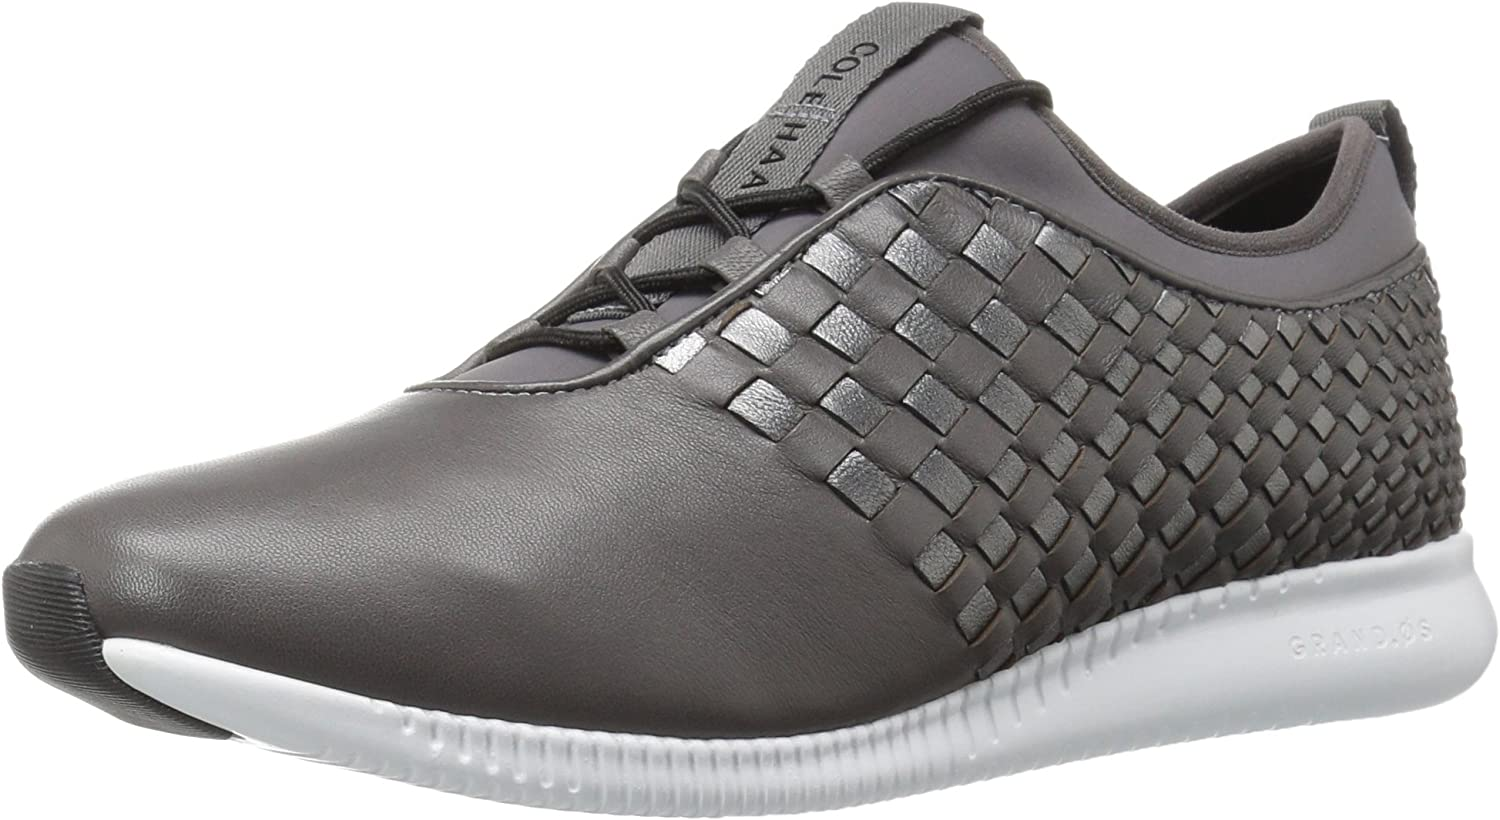 Cole Haan Womens Studio Grand Weave Trainer Sneakers